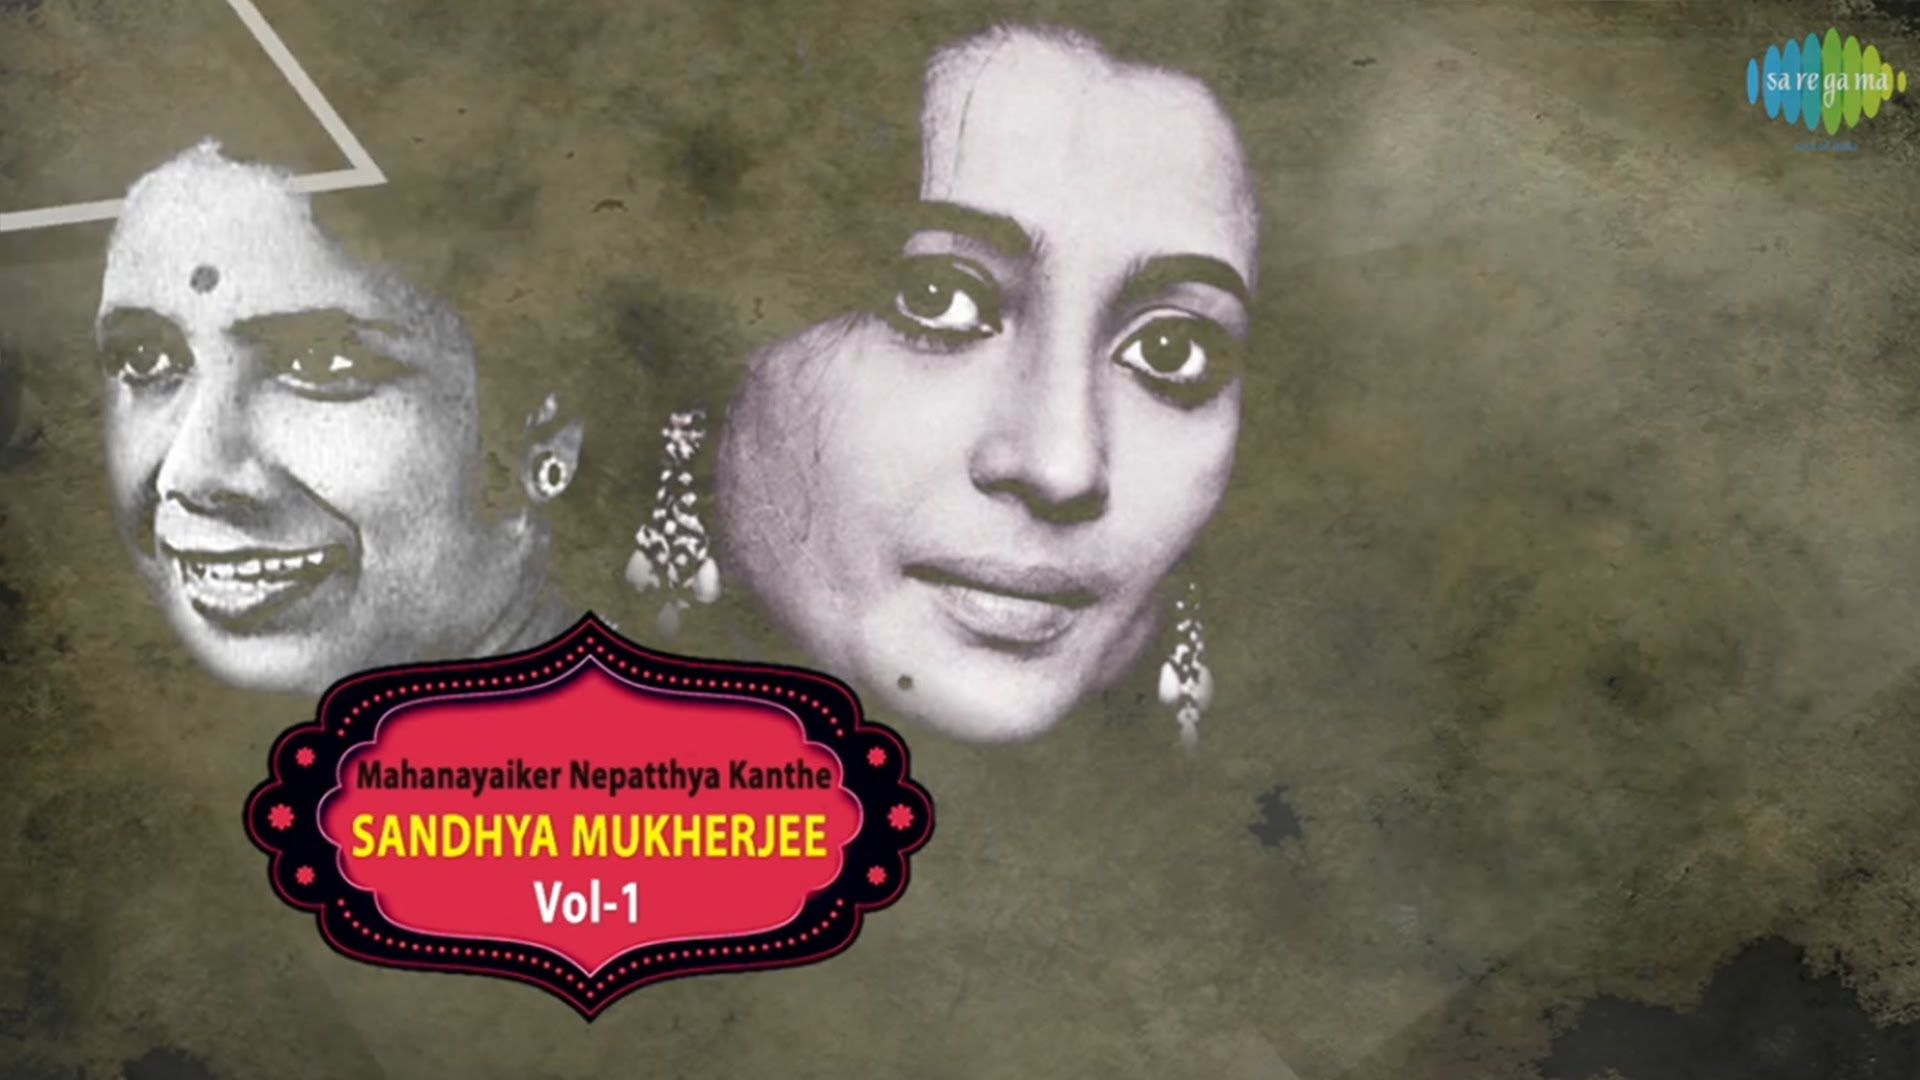 Listen here to these amazing songs by Sandhya Mukherjee, all